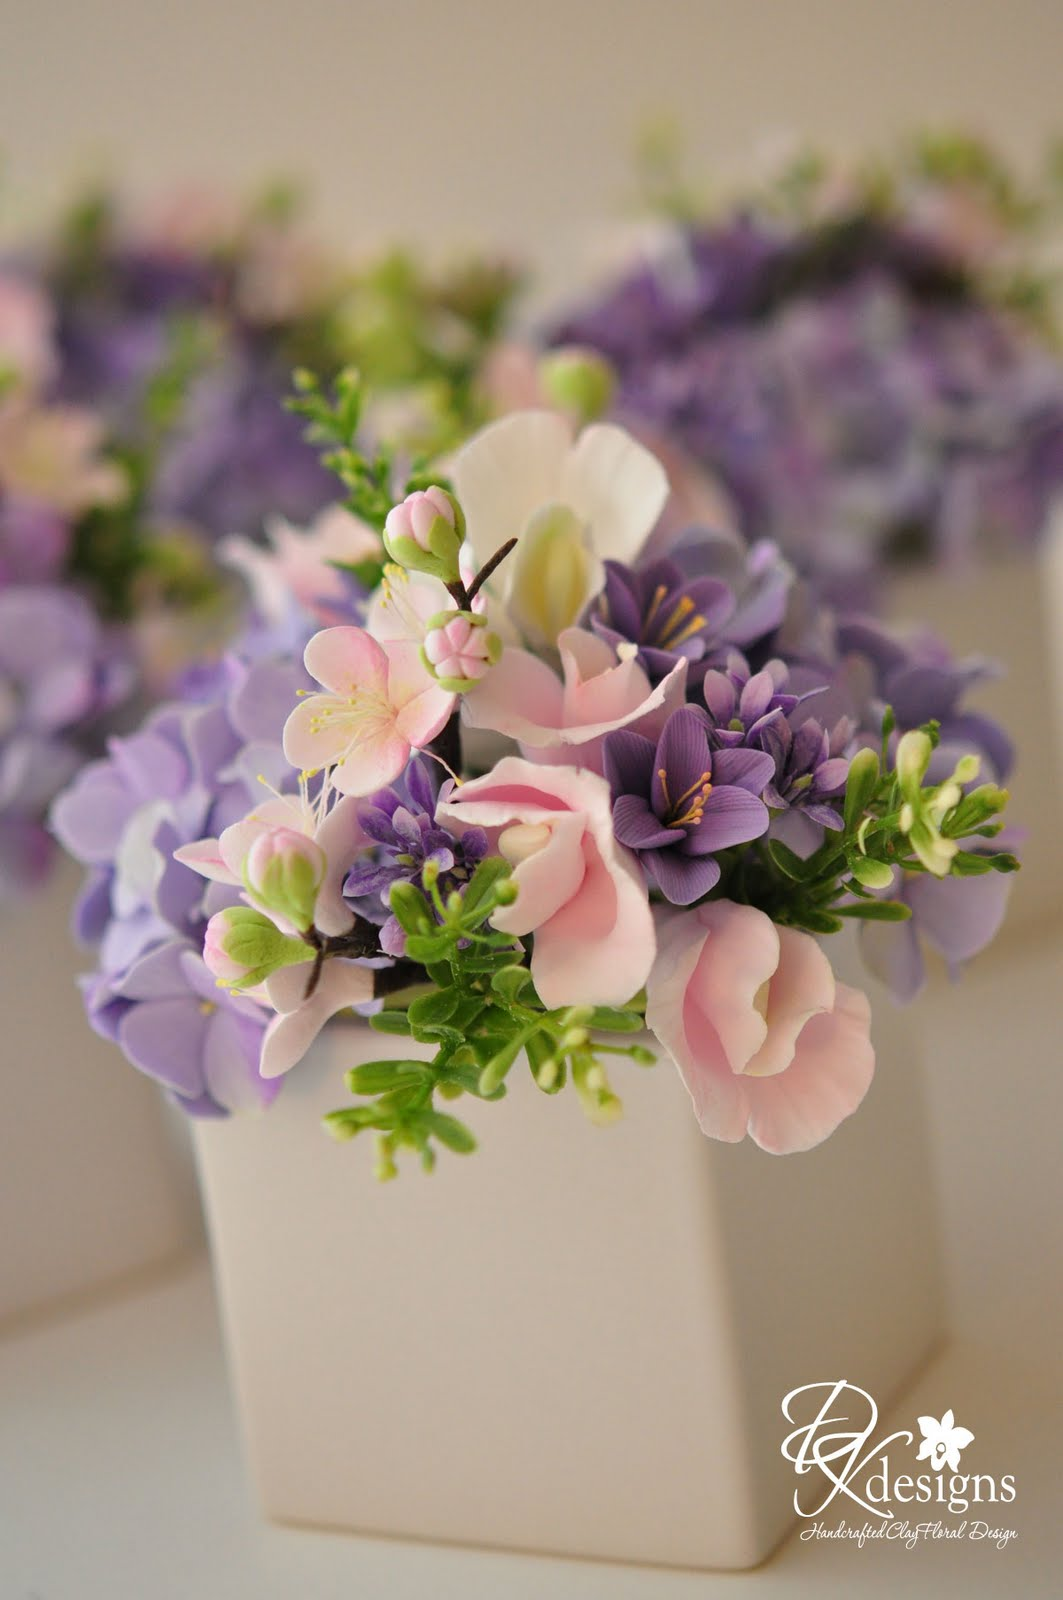 Line floral arrangements down your table―if you don't have enough vases, cake tins, jelly molds, and small ice buckets make surprisingly pretty containers.